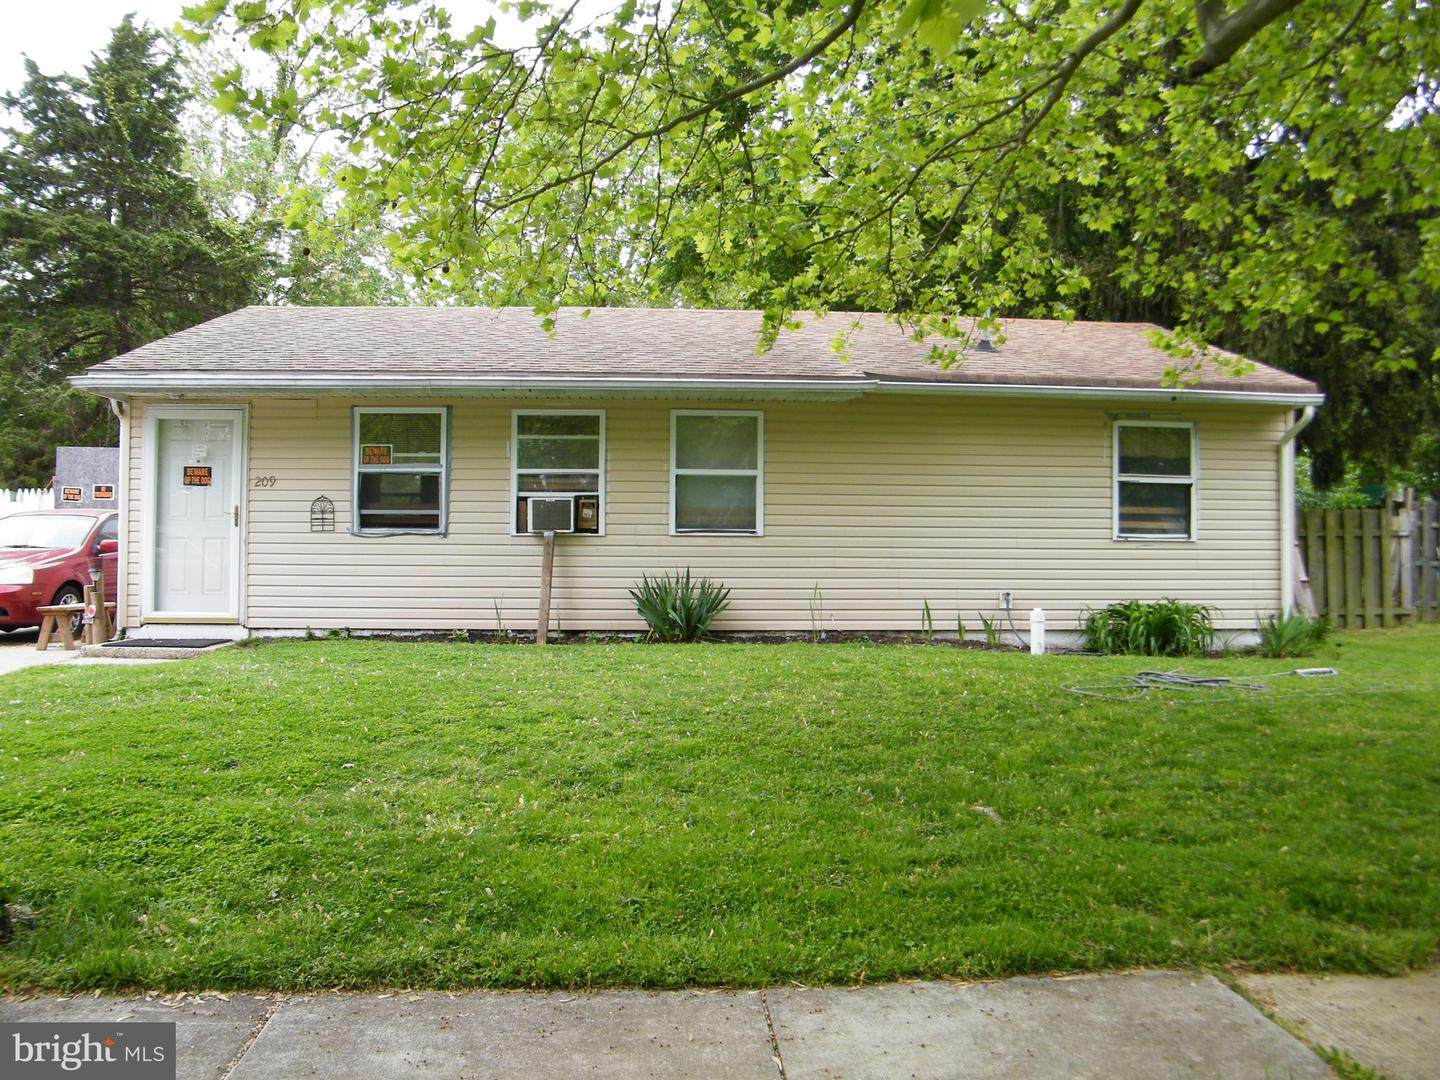 Photo of 209 N Governors Boulevard, Dover DE